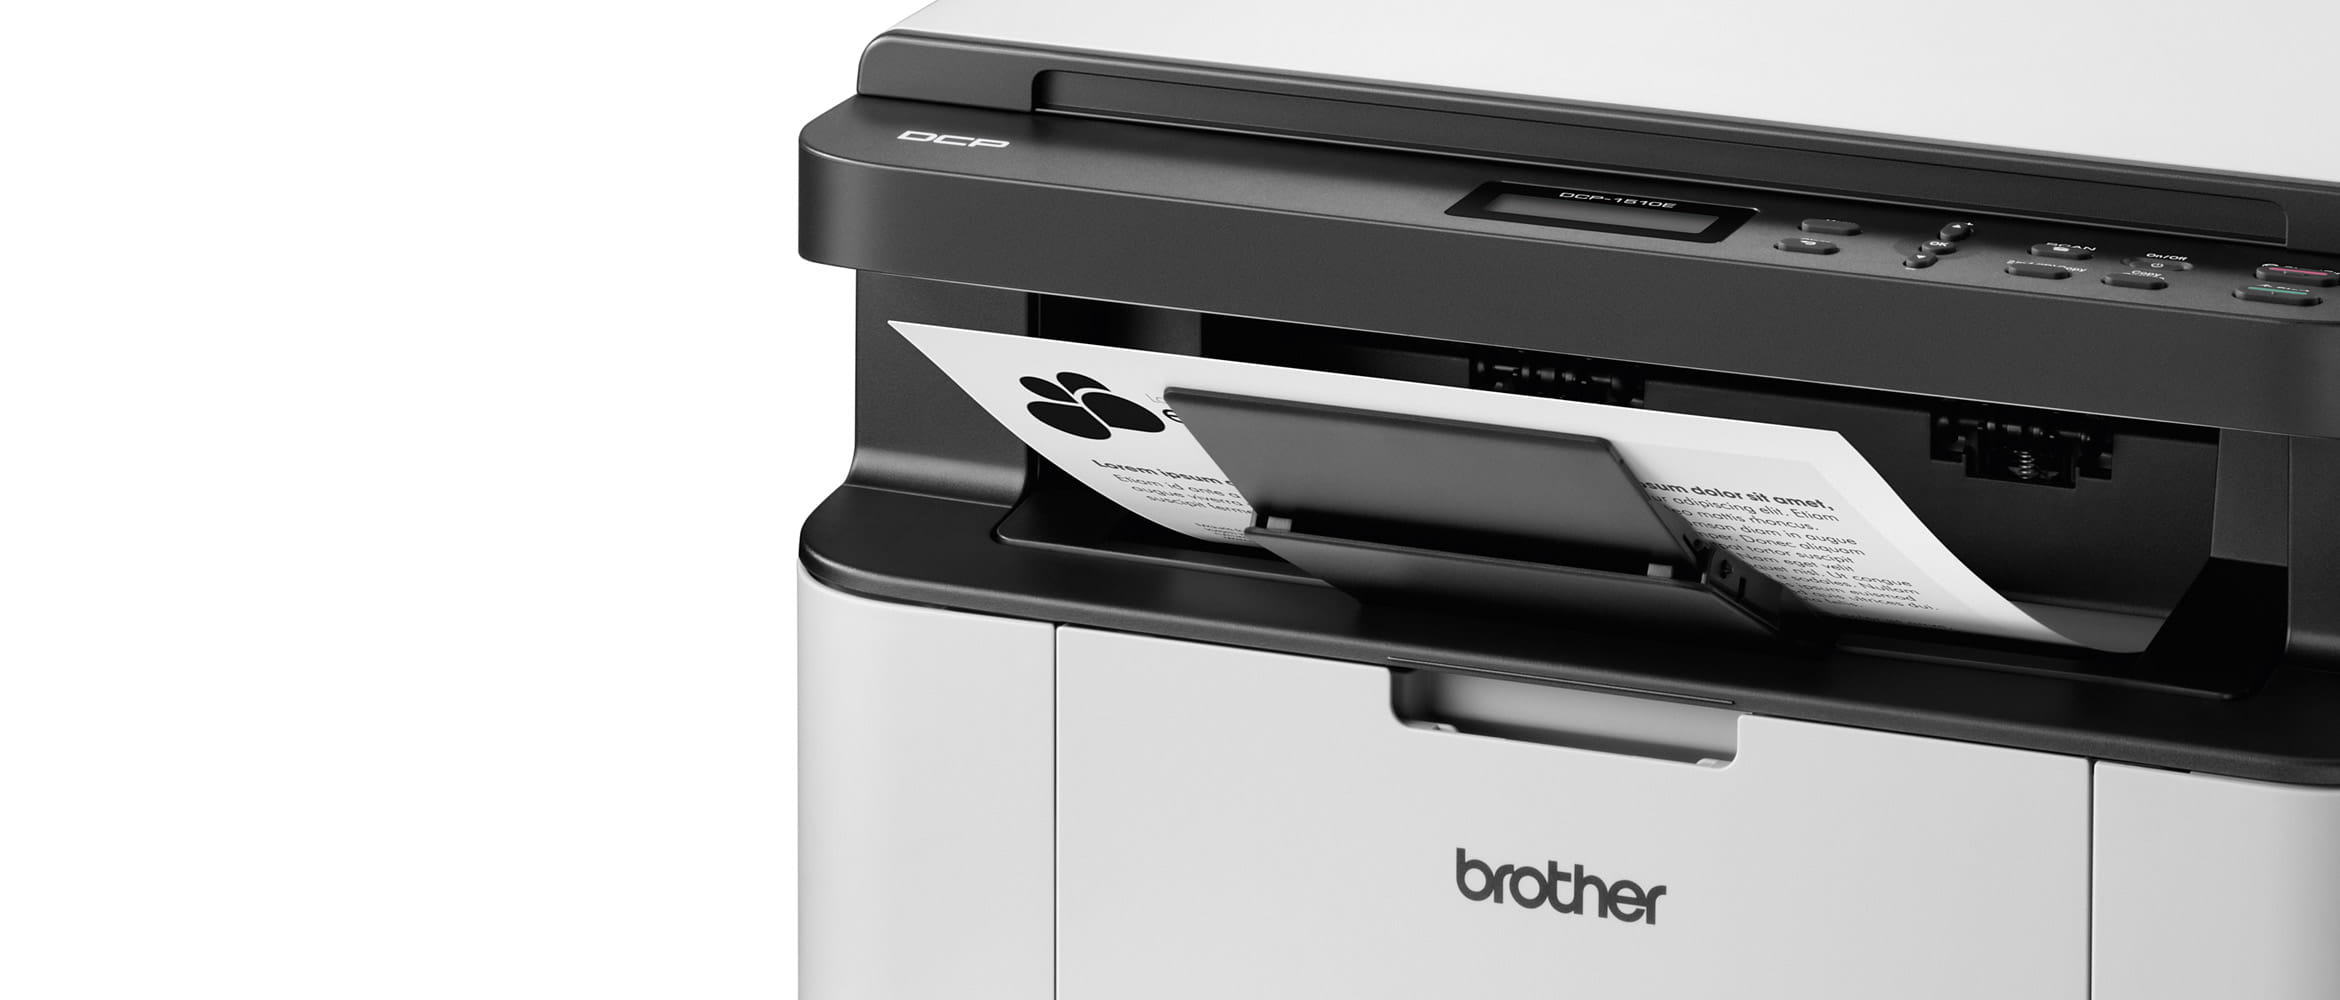 Brother-all-in-one-mono-laser-printer-dcp-1510e